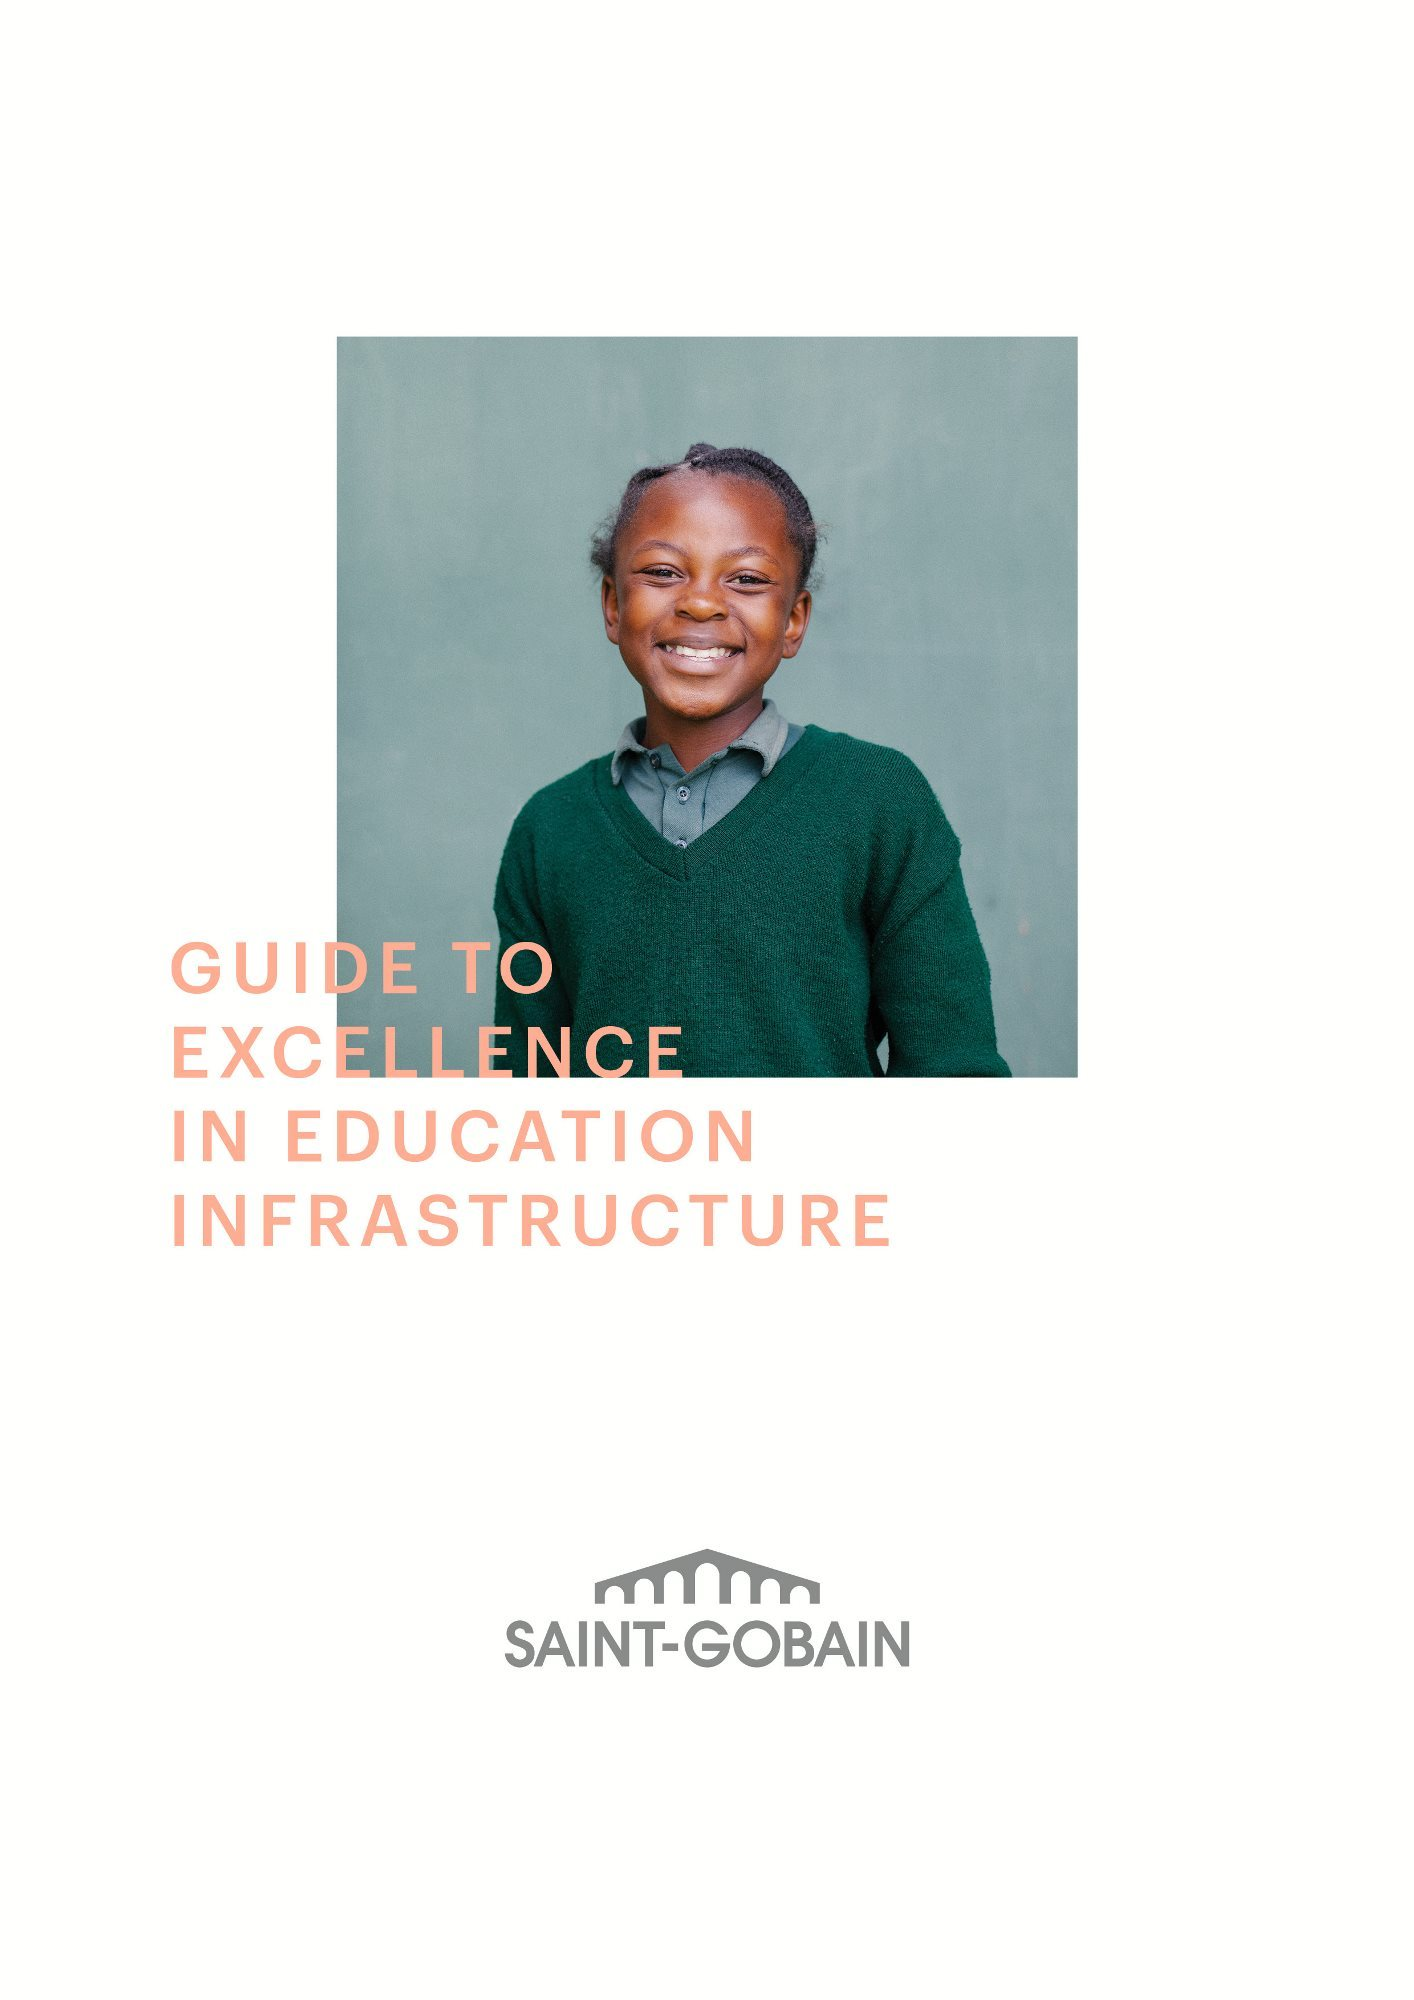 Excellence in education infrastructure